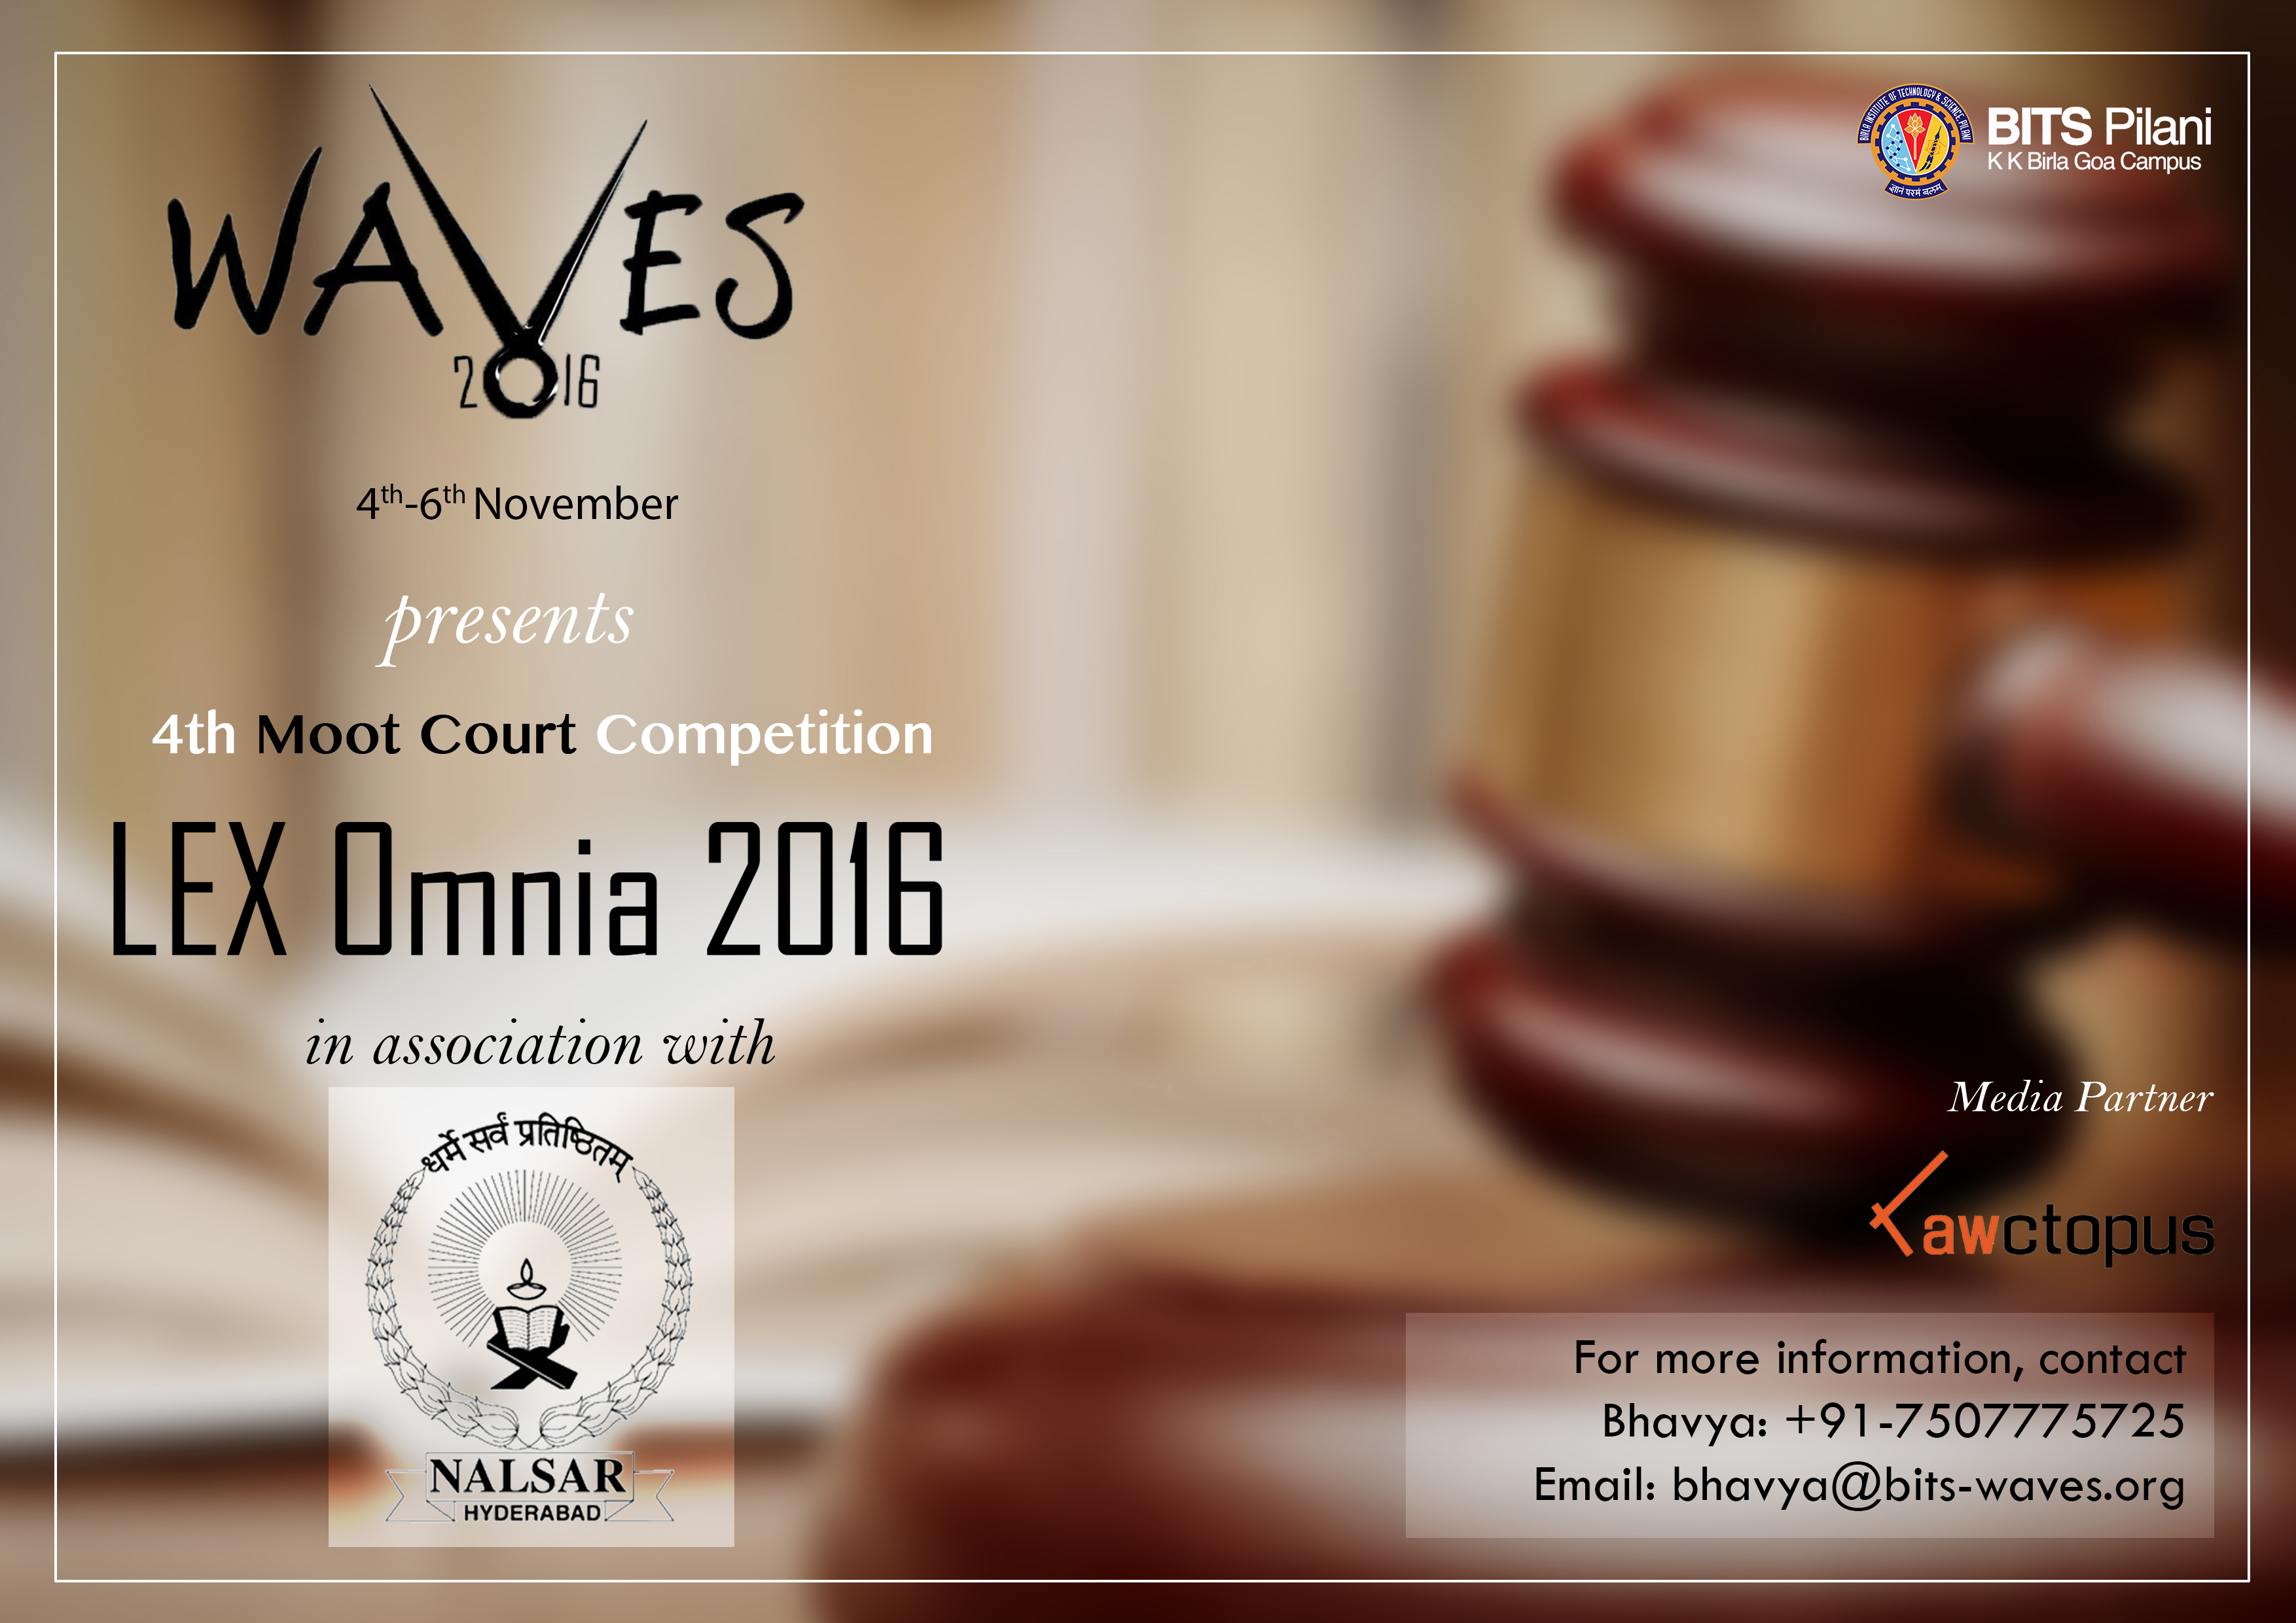 BITS Pilani's Lex Omnia National Moot Court Competition 2016